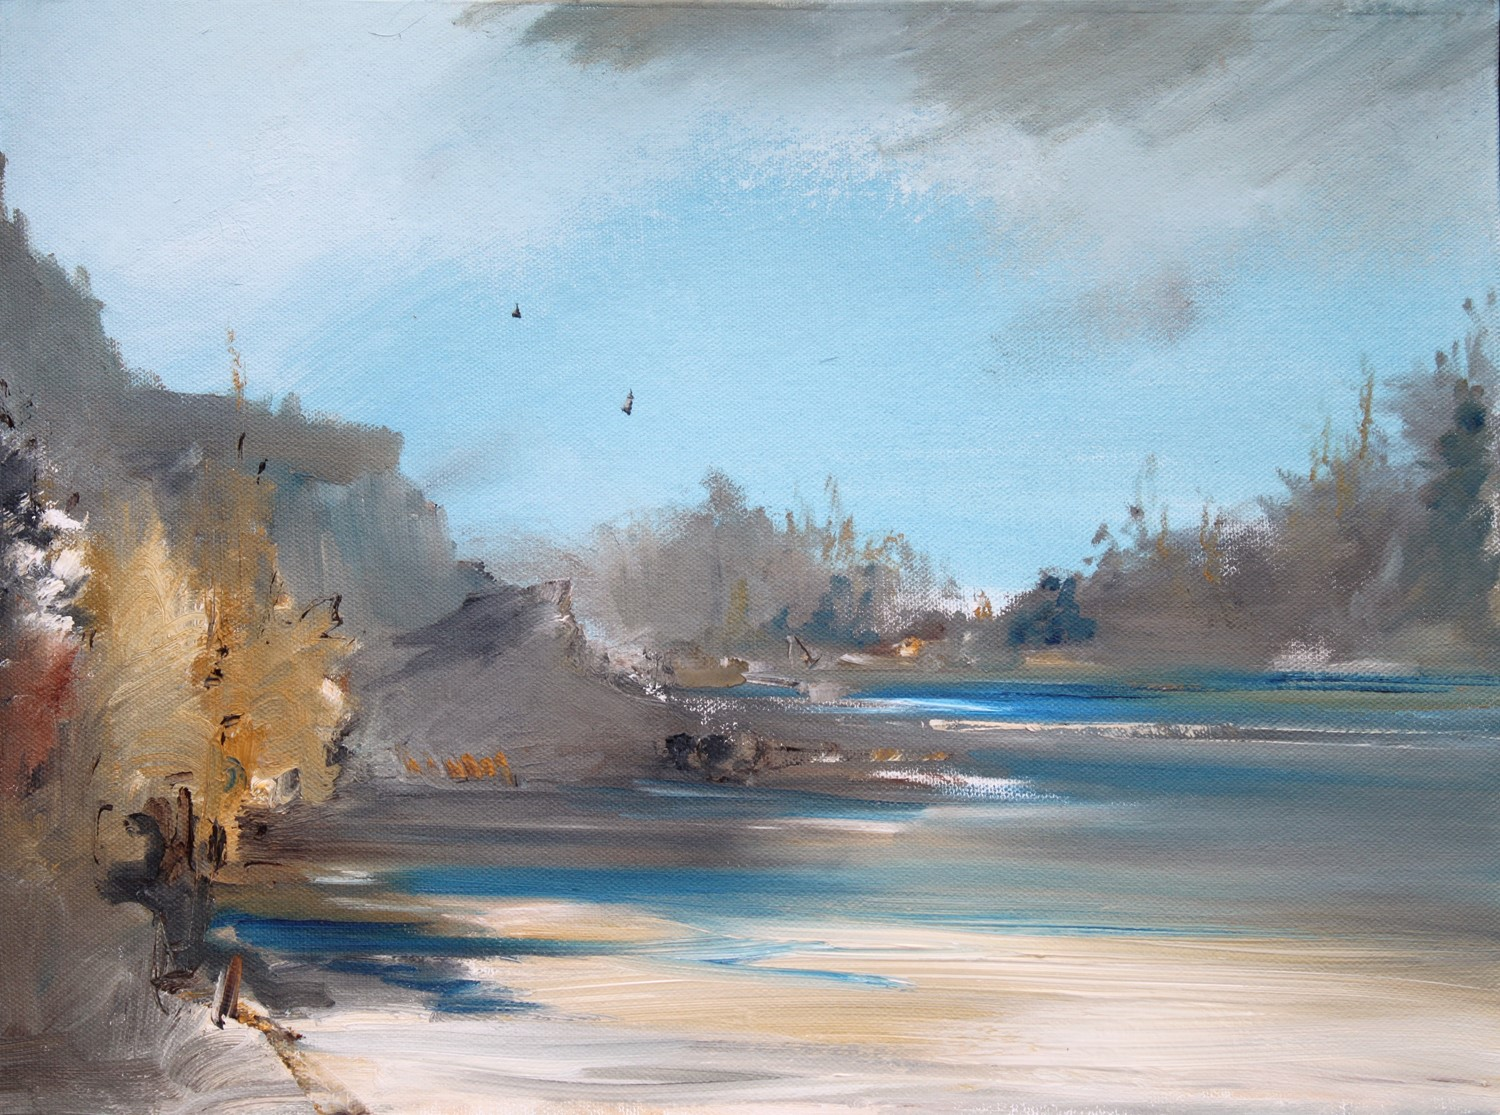 'A Little Inlet' by artist Rosanne Barr